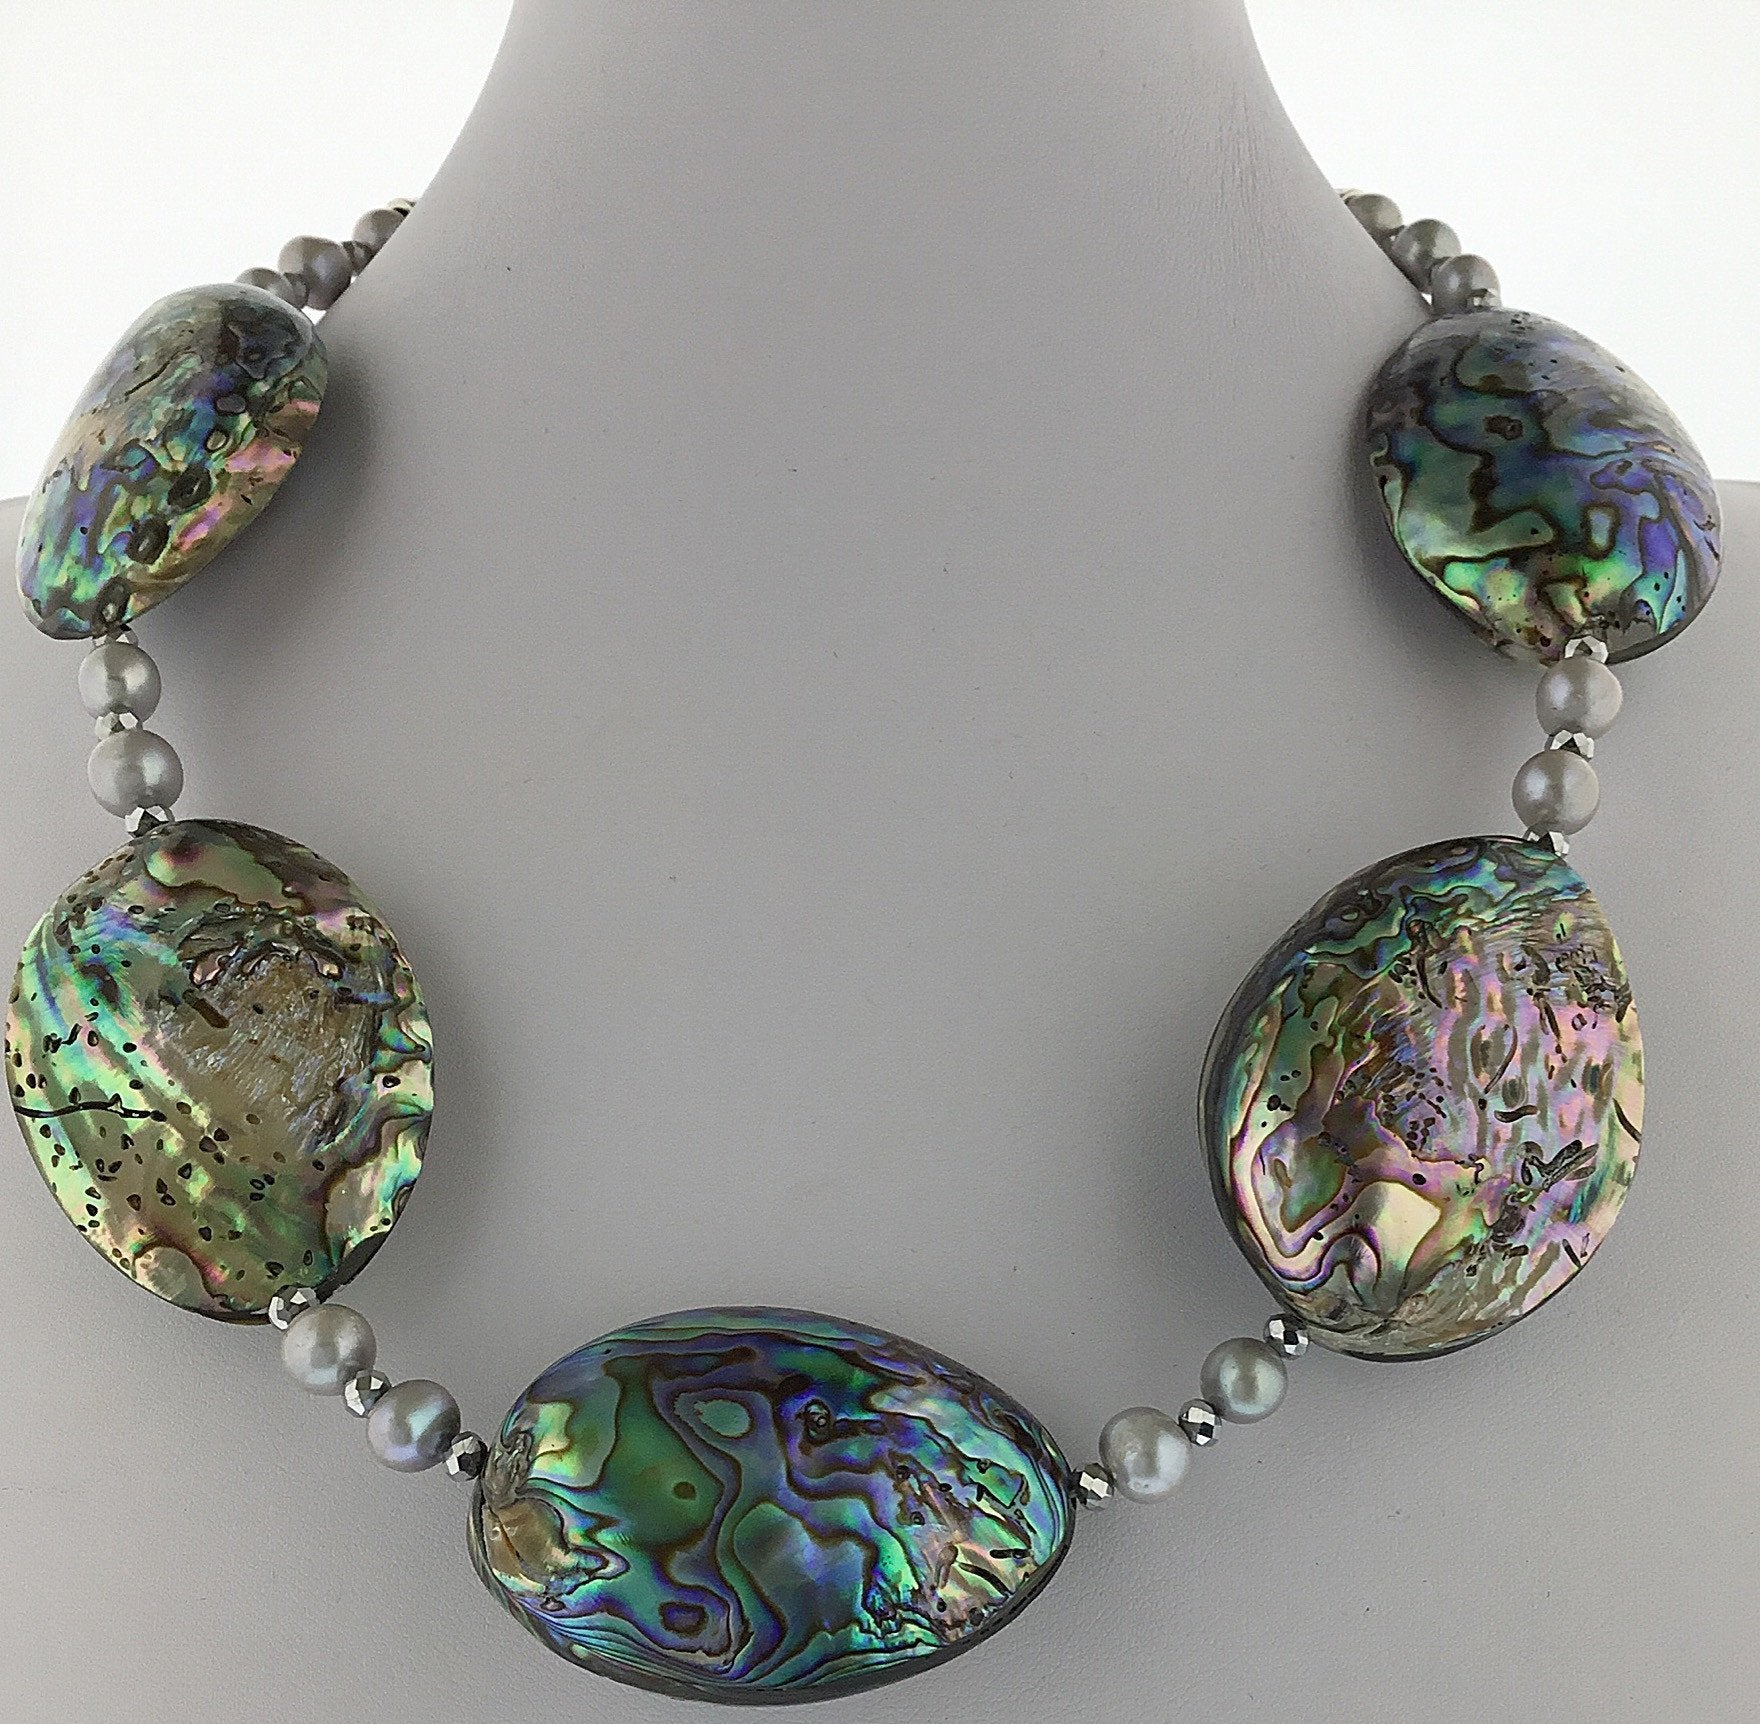 Abalone and Pearl Necklace - Real Chic Boutique  - 2